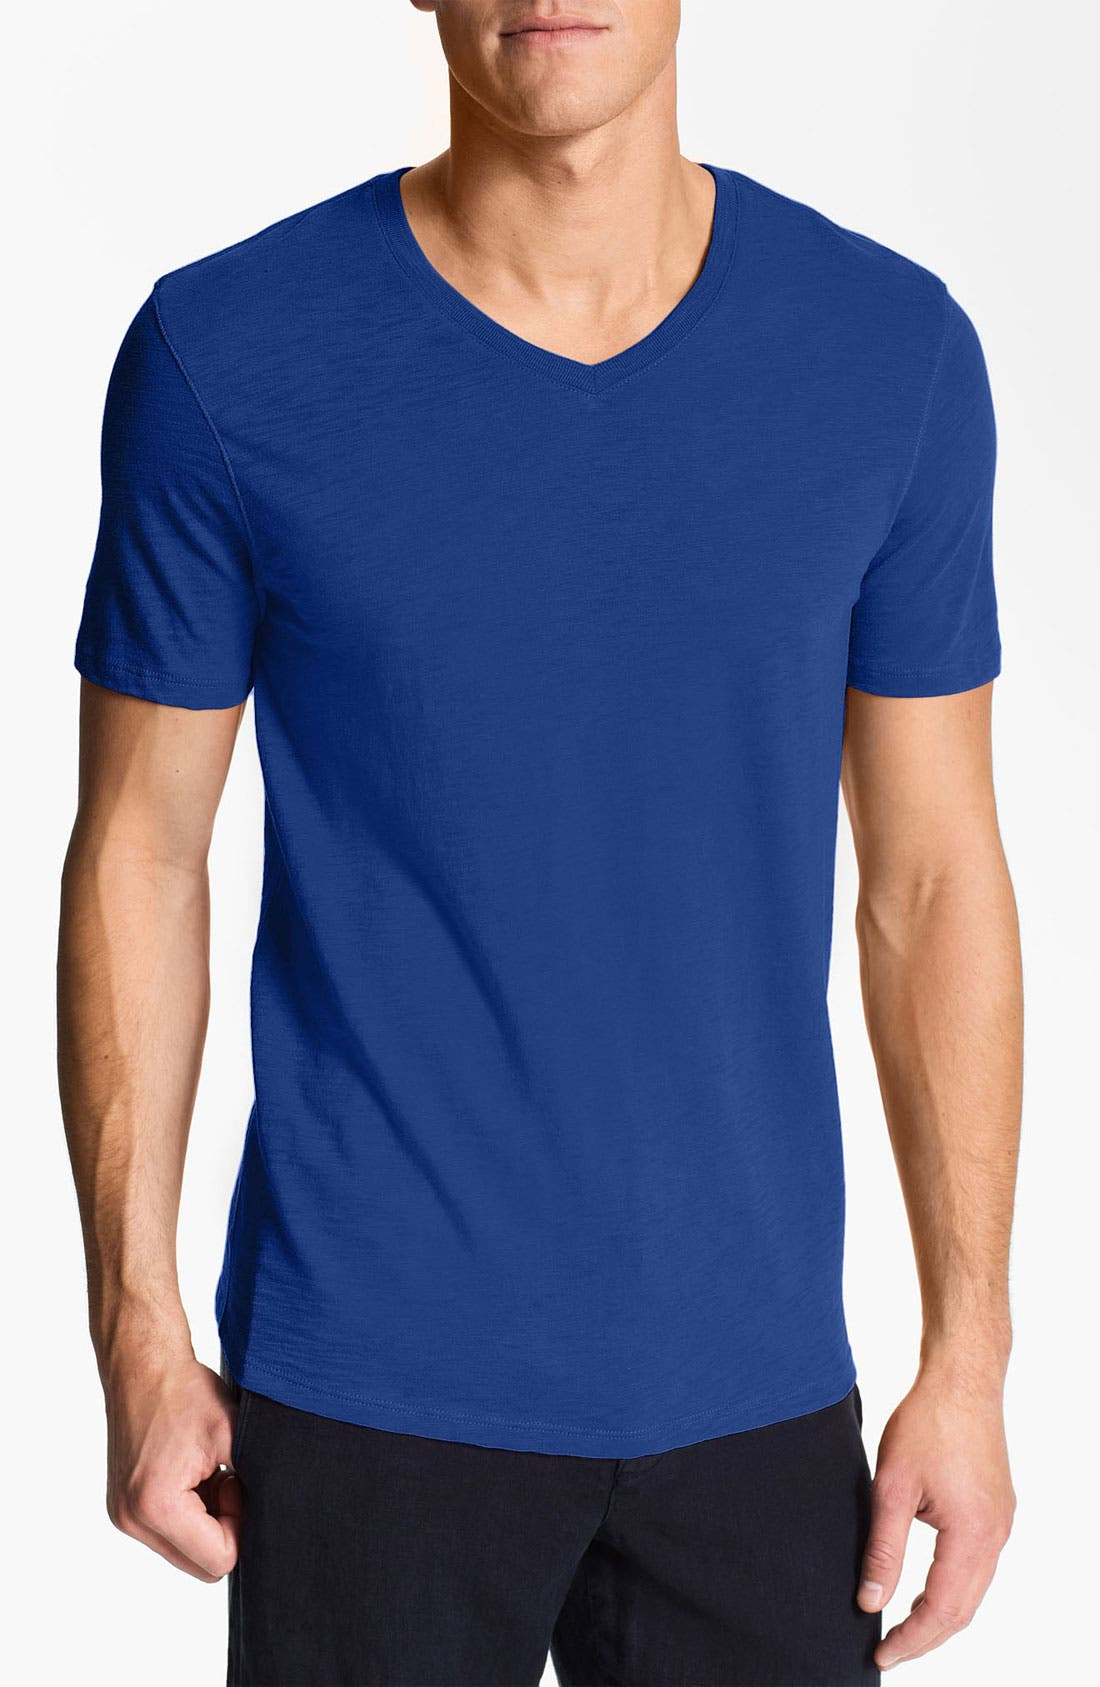 Alternate Image 1 Selected - Vince V-Neck Slub Knit T-Shirt